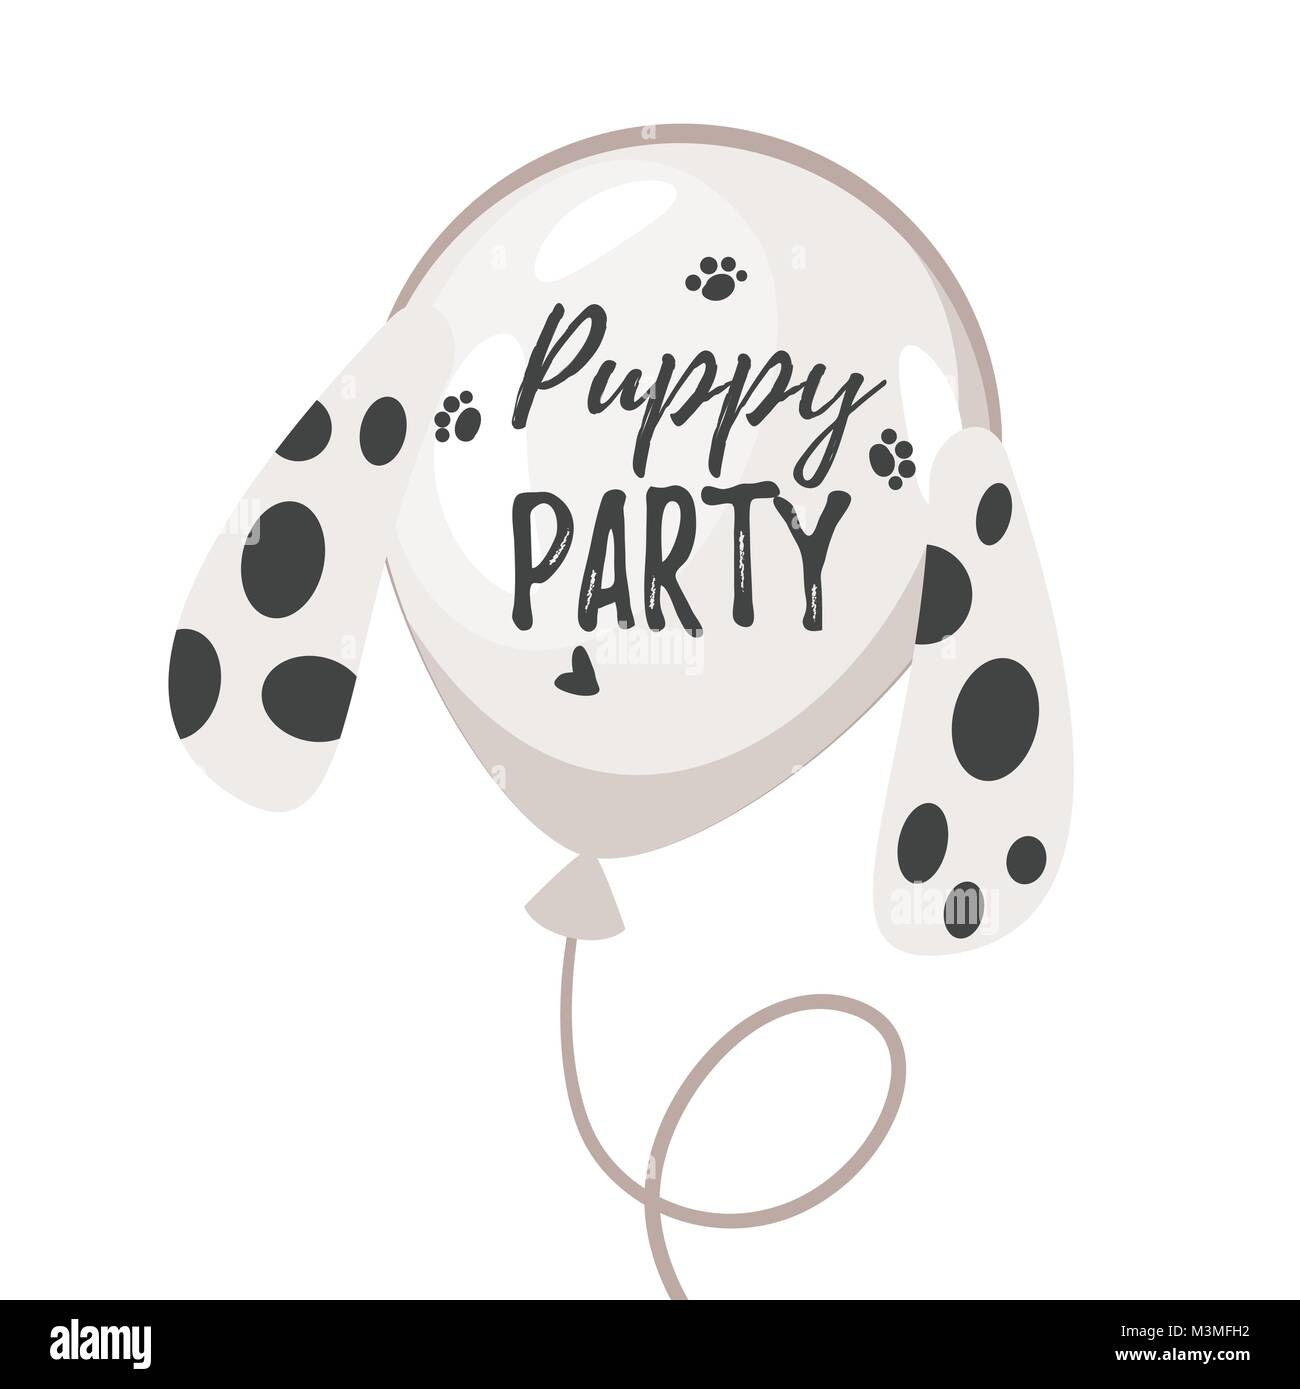 Vector  cartoon style illustration of Dog party greeting card with air balloon with dogs ears with black spots like - Stock Vector